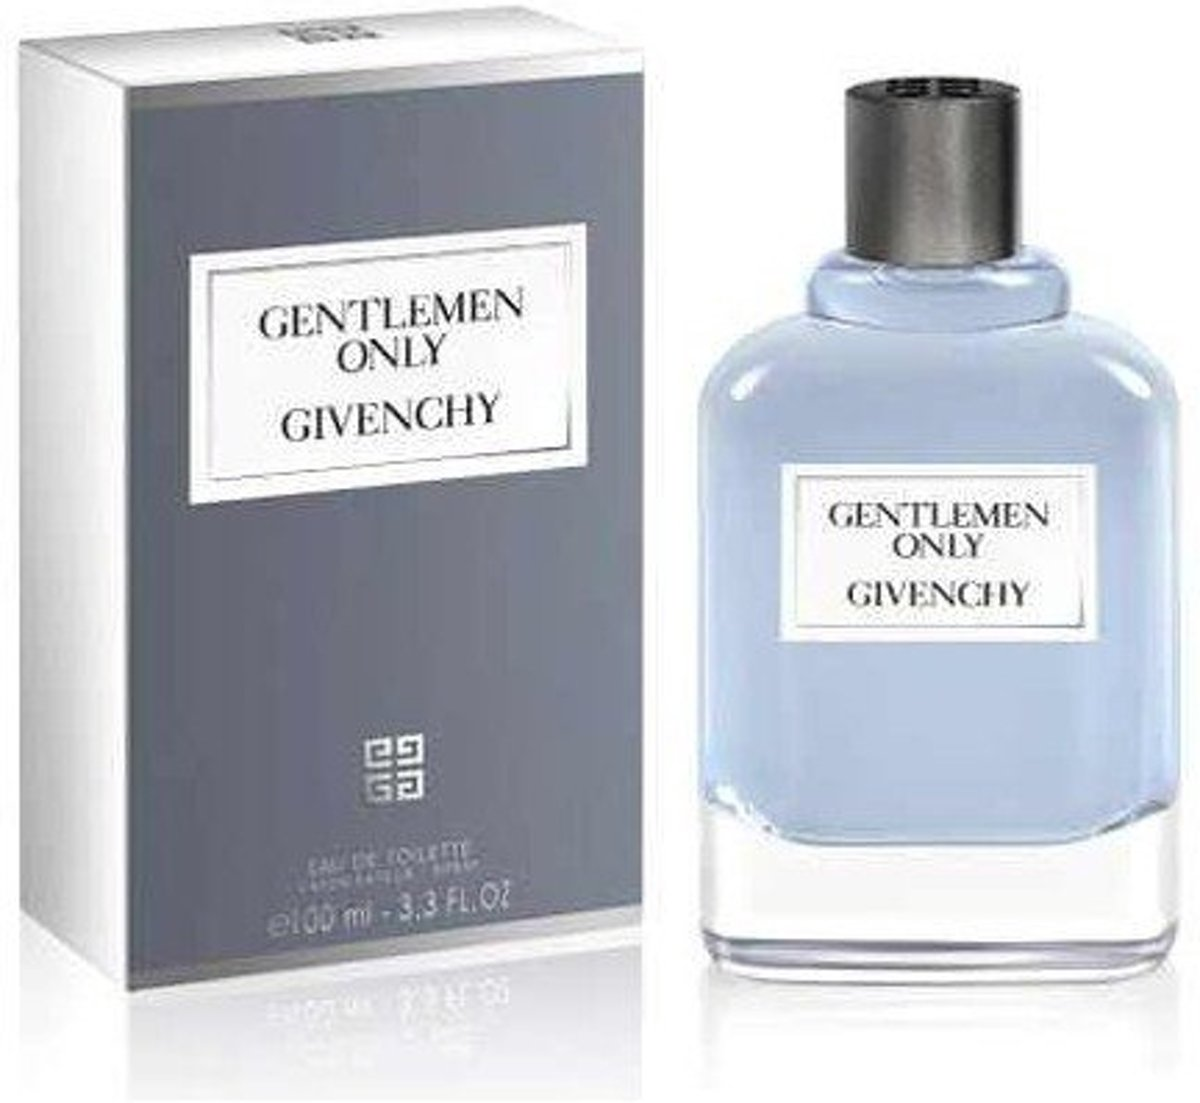 Givenchy Gentlemen Only -  150 ml - Eau de Toilette